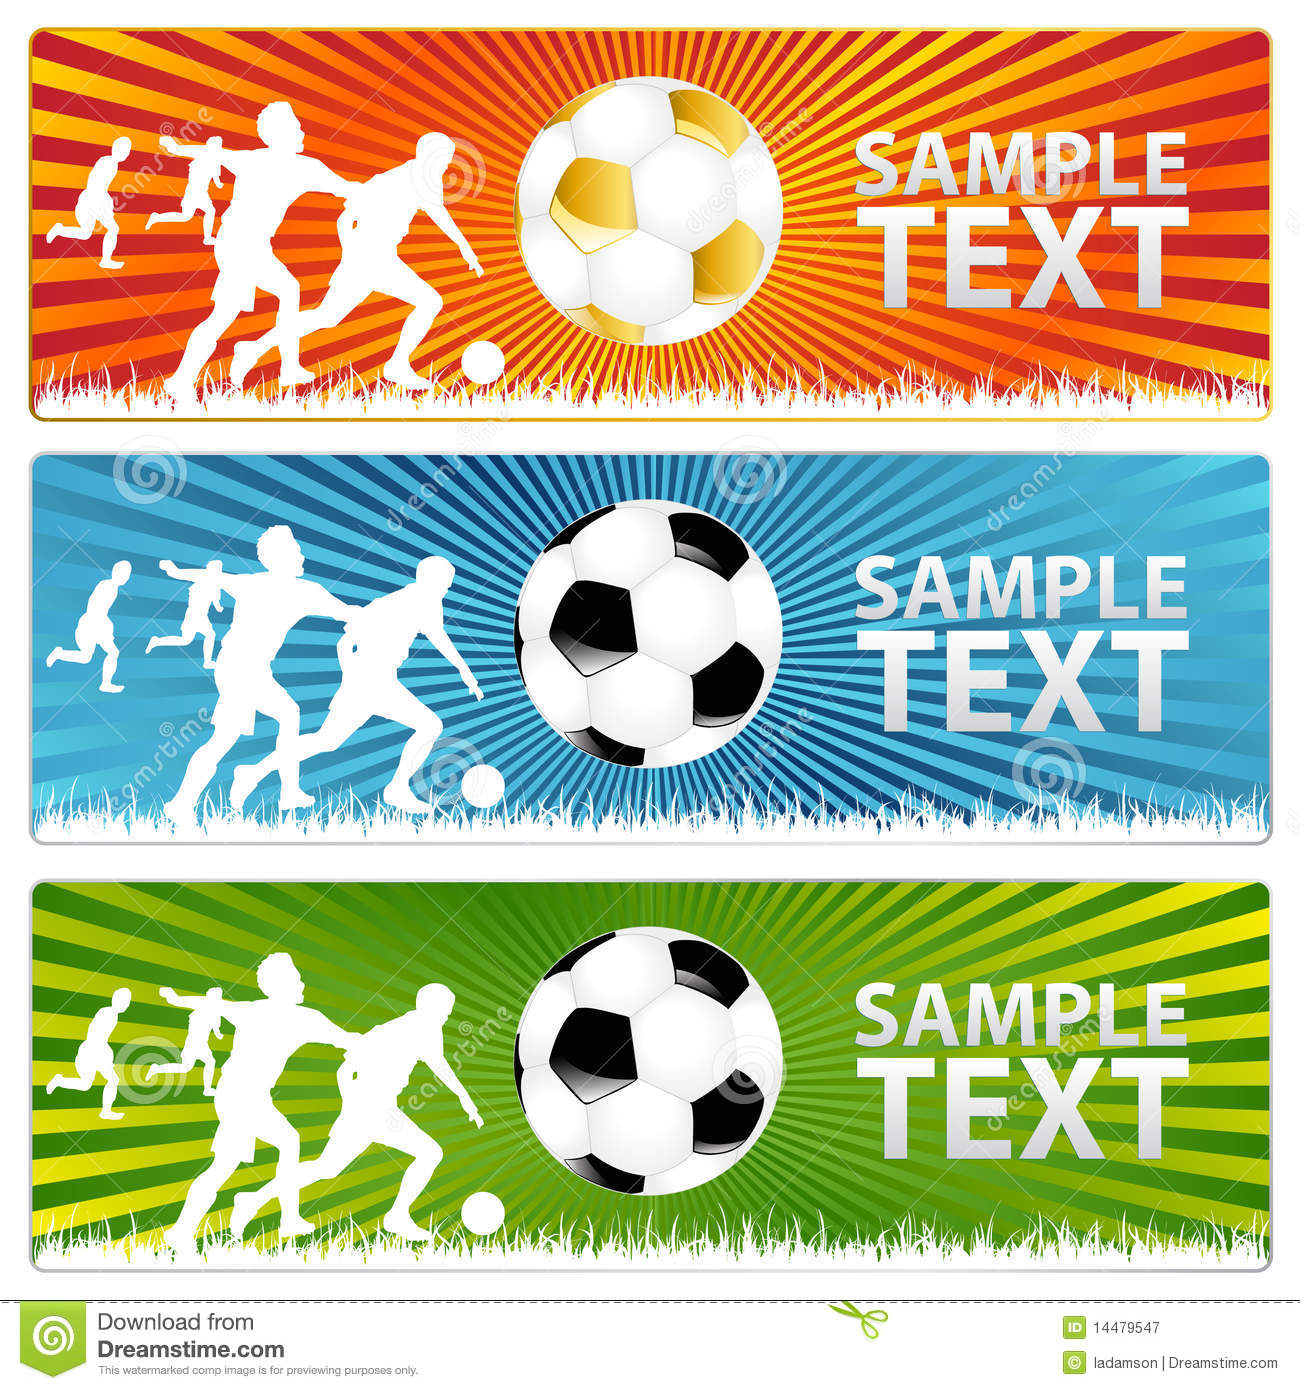 8 Soccer Banners Vectors Images